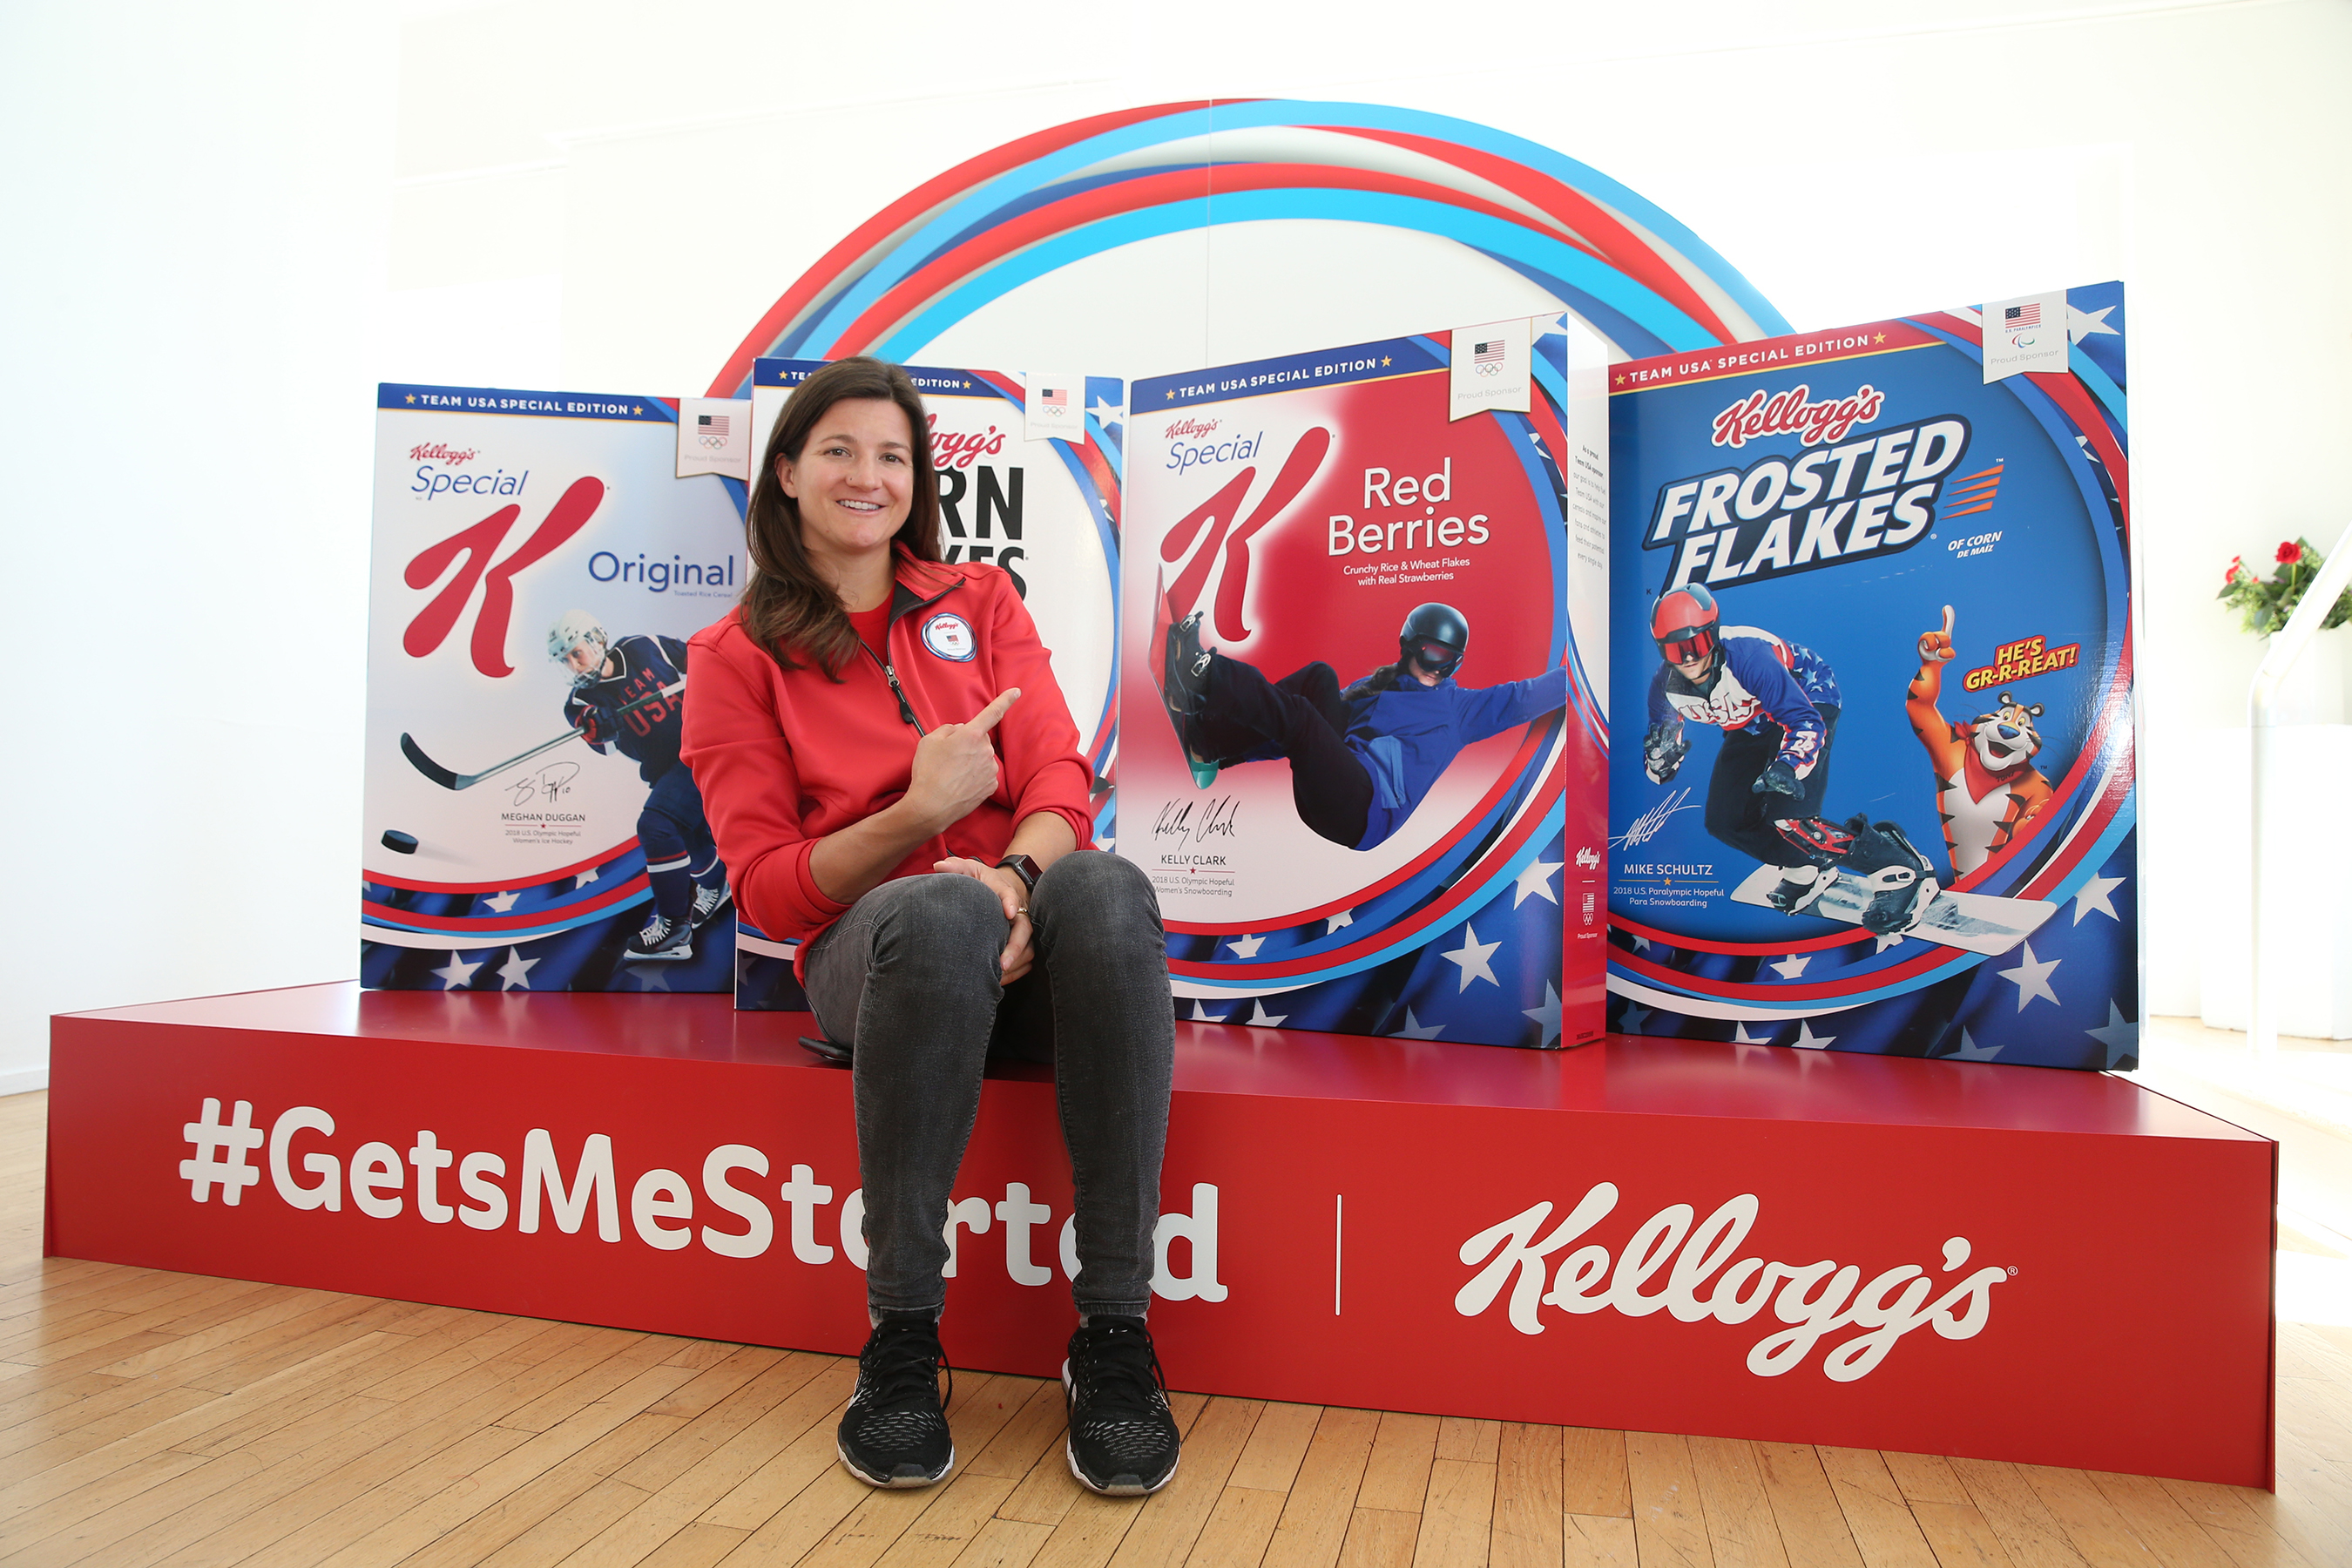 U.S. Olympic Hopeful, Kelly Clark, sees her face on a Kellogg's cereal box for the first time at the Team Kellogg's 100 Days Out celebration.